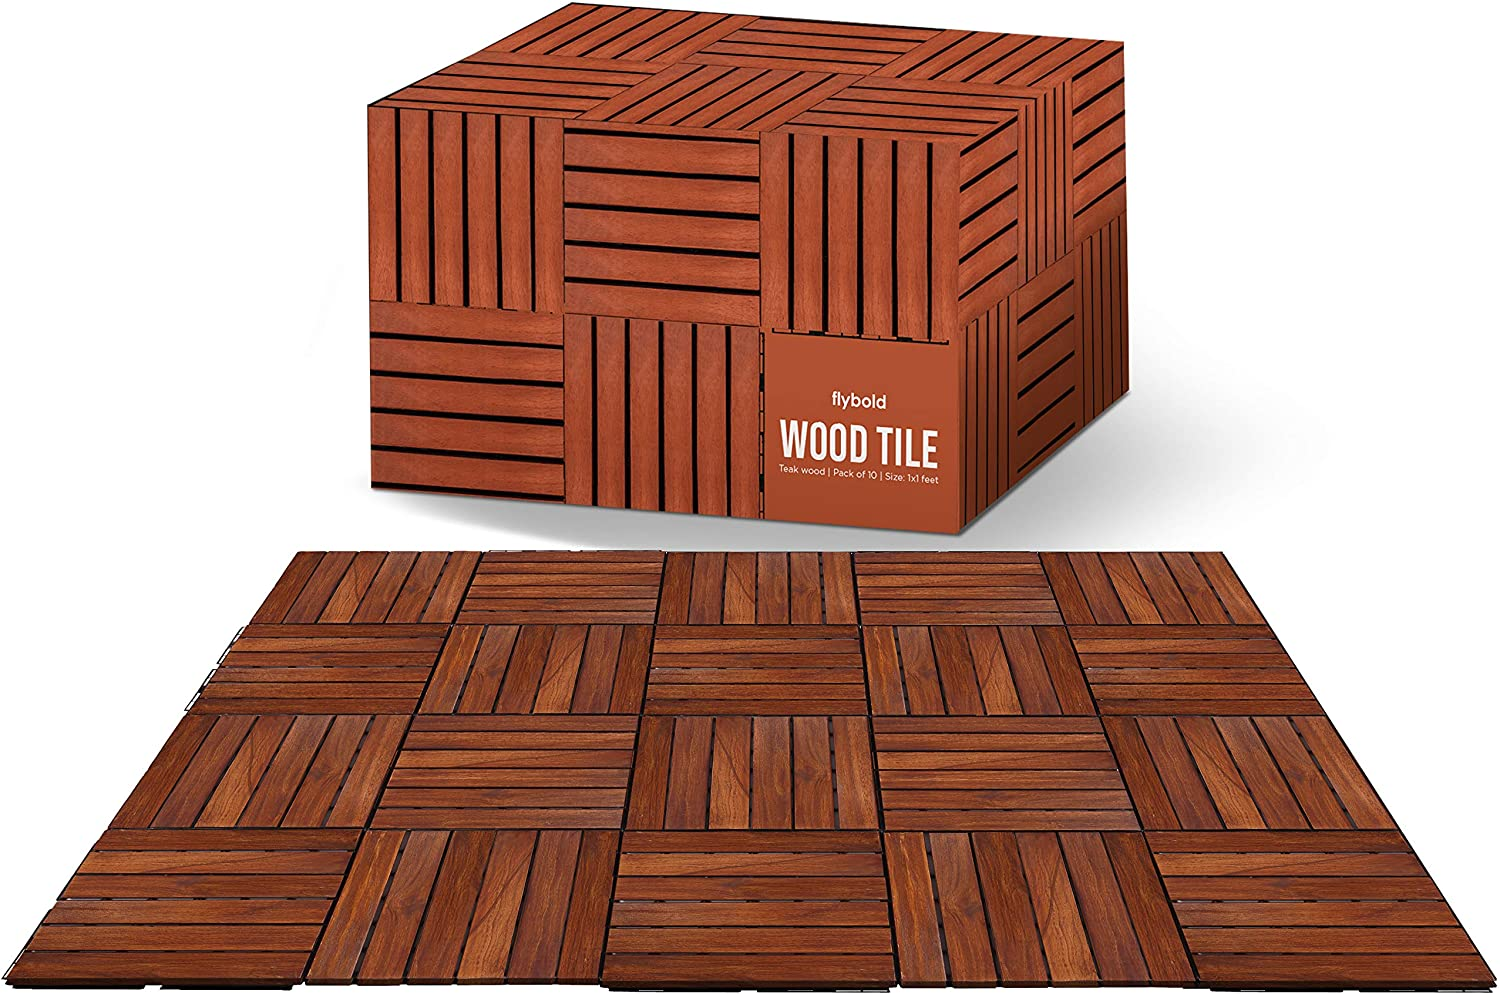 "Wood Interlocking Floor Tiles Solid Teak Wood Flooring Tile with UV Protection Oiled Finish Snap Lock for Outdoor Indoor Decor Patio Deck Shower Balcony Dance Floors Pack of 10 Pieces 12"" x 12"""